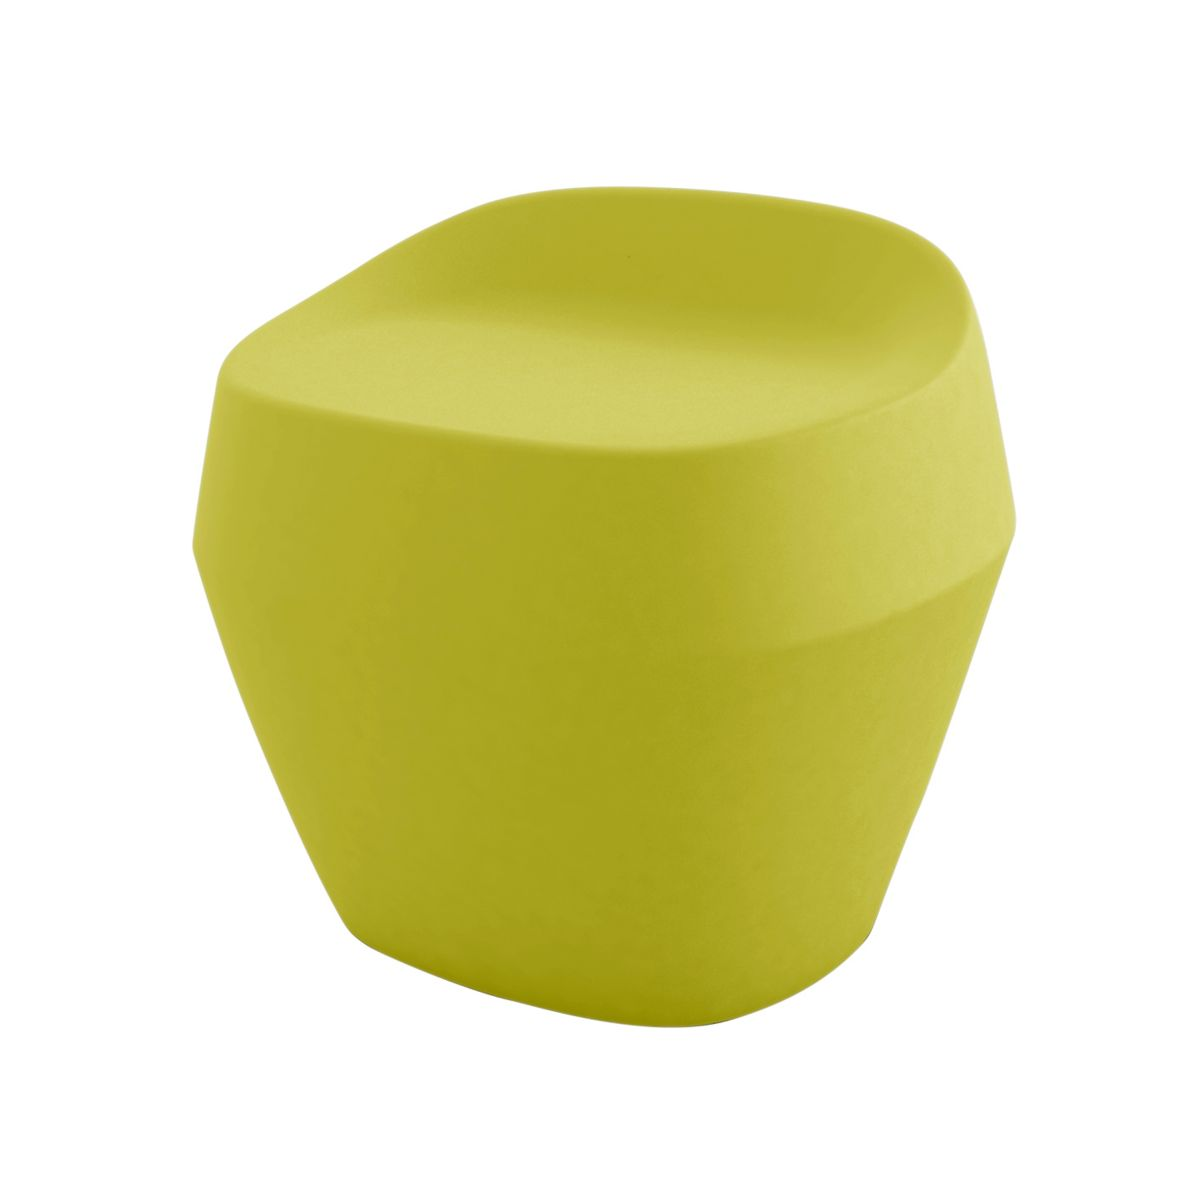 Chaise pouf design d ext rieur moma medium par vondom for Chaise yamaha